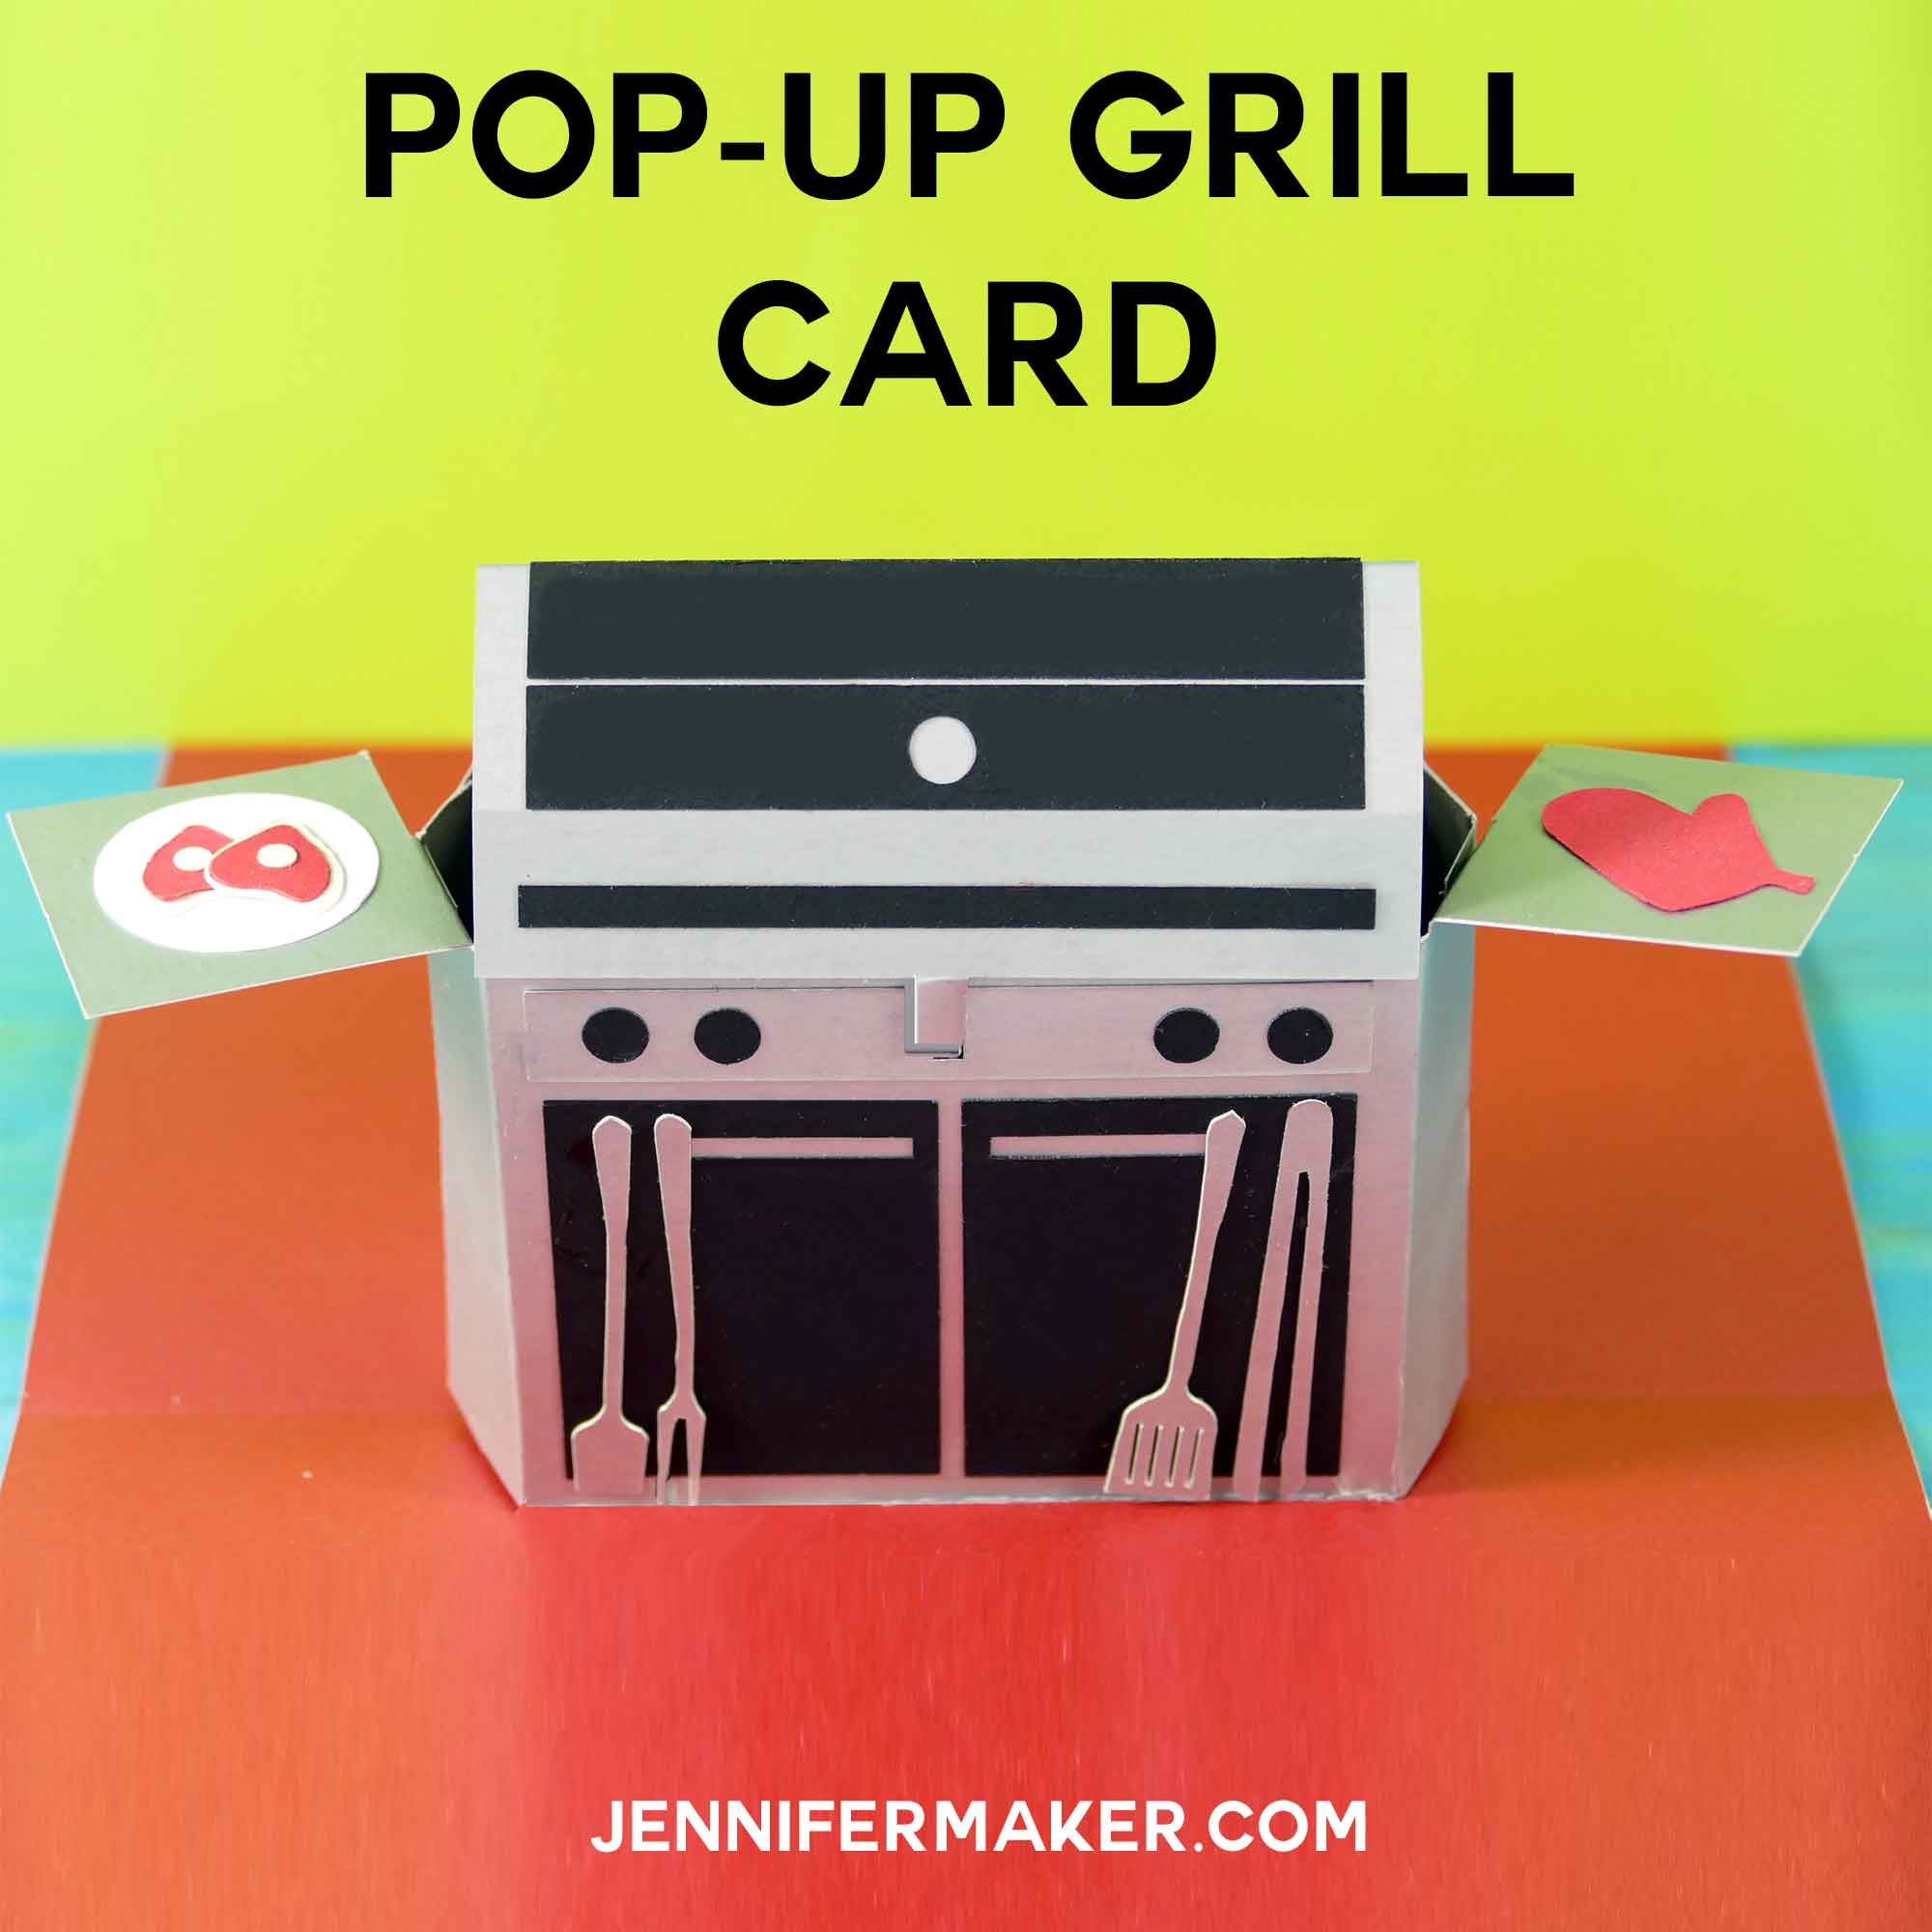 Pop-Up Grill Card | Gift Card Holder | SVG cut Files and Tutorial